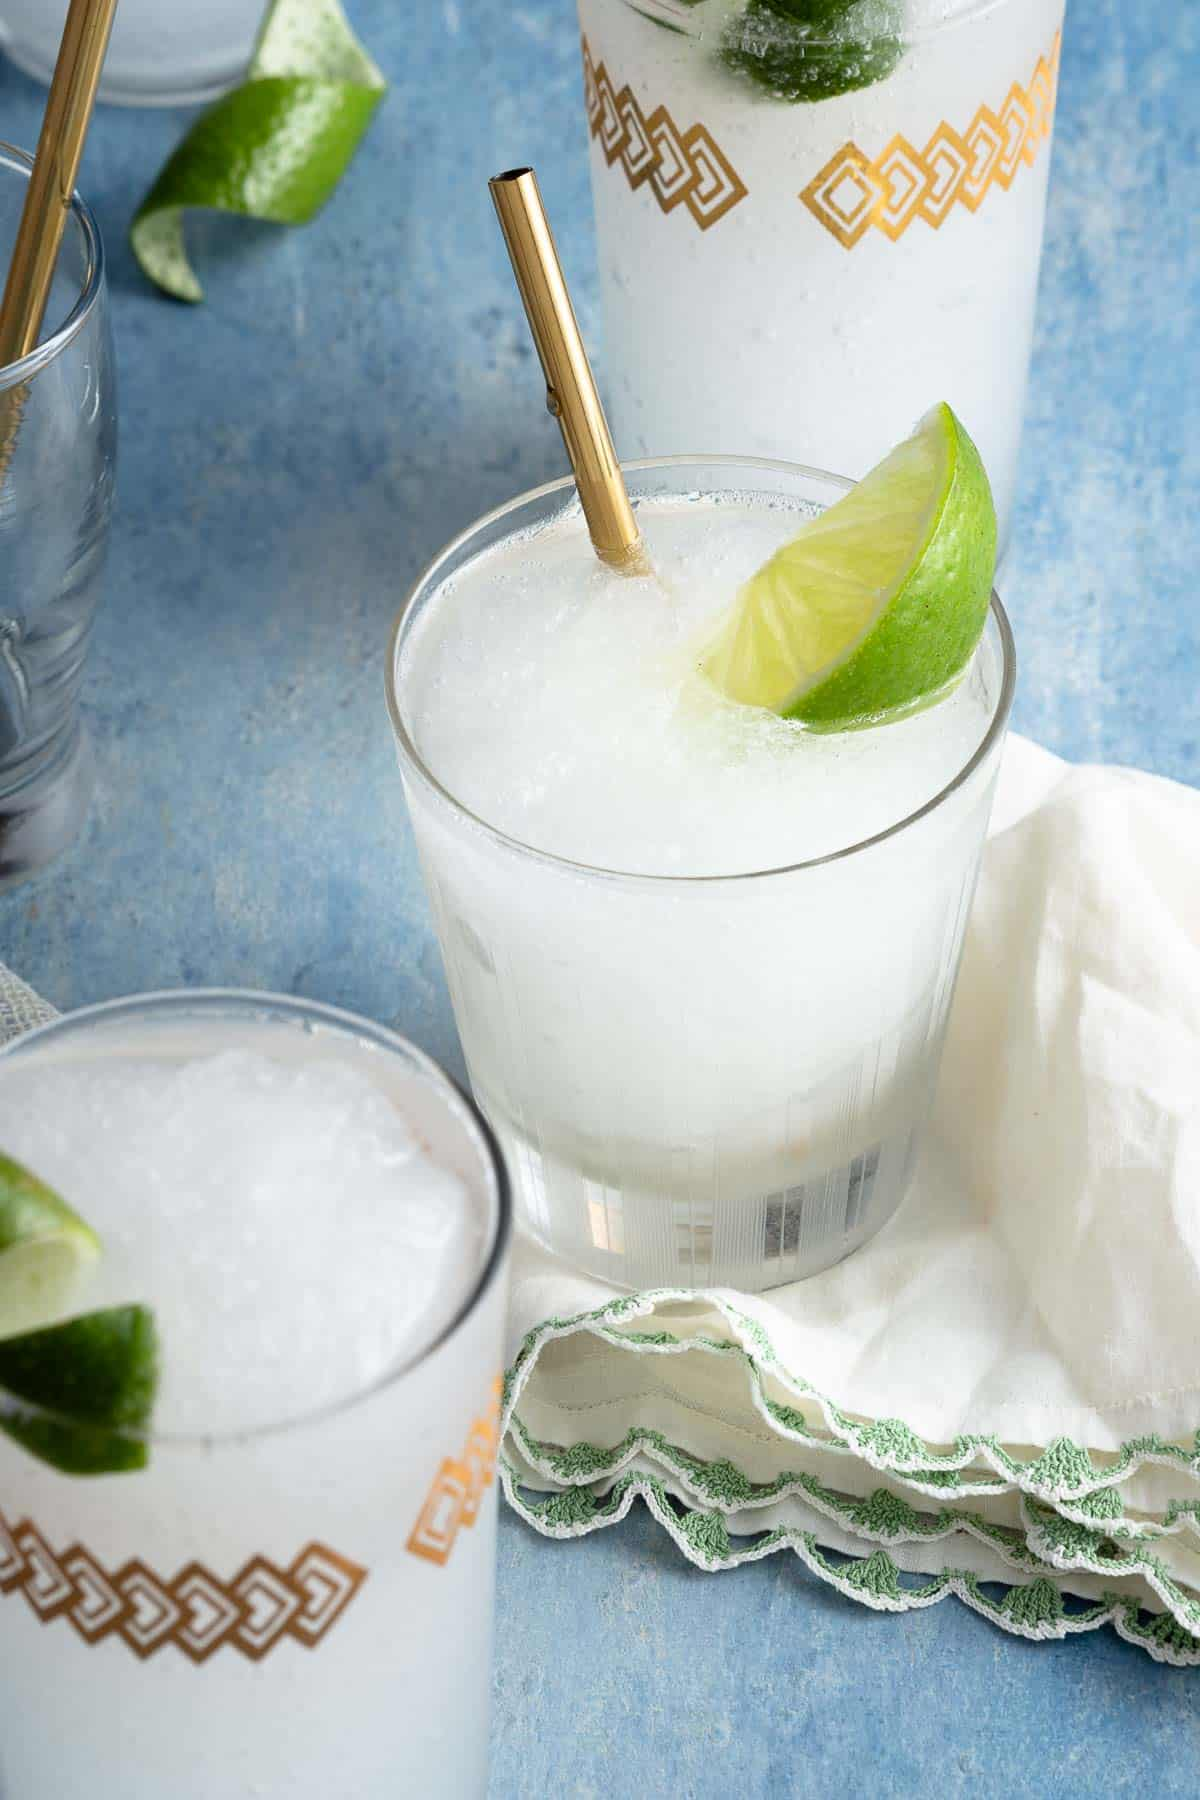 multiple glasses of white slushie drinks garnished with lime and gold straws